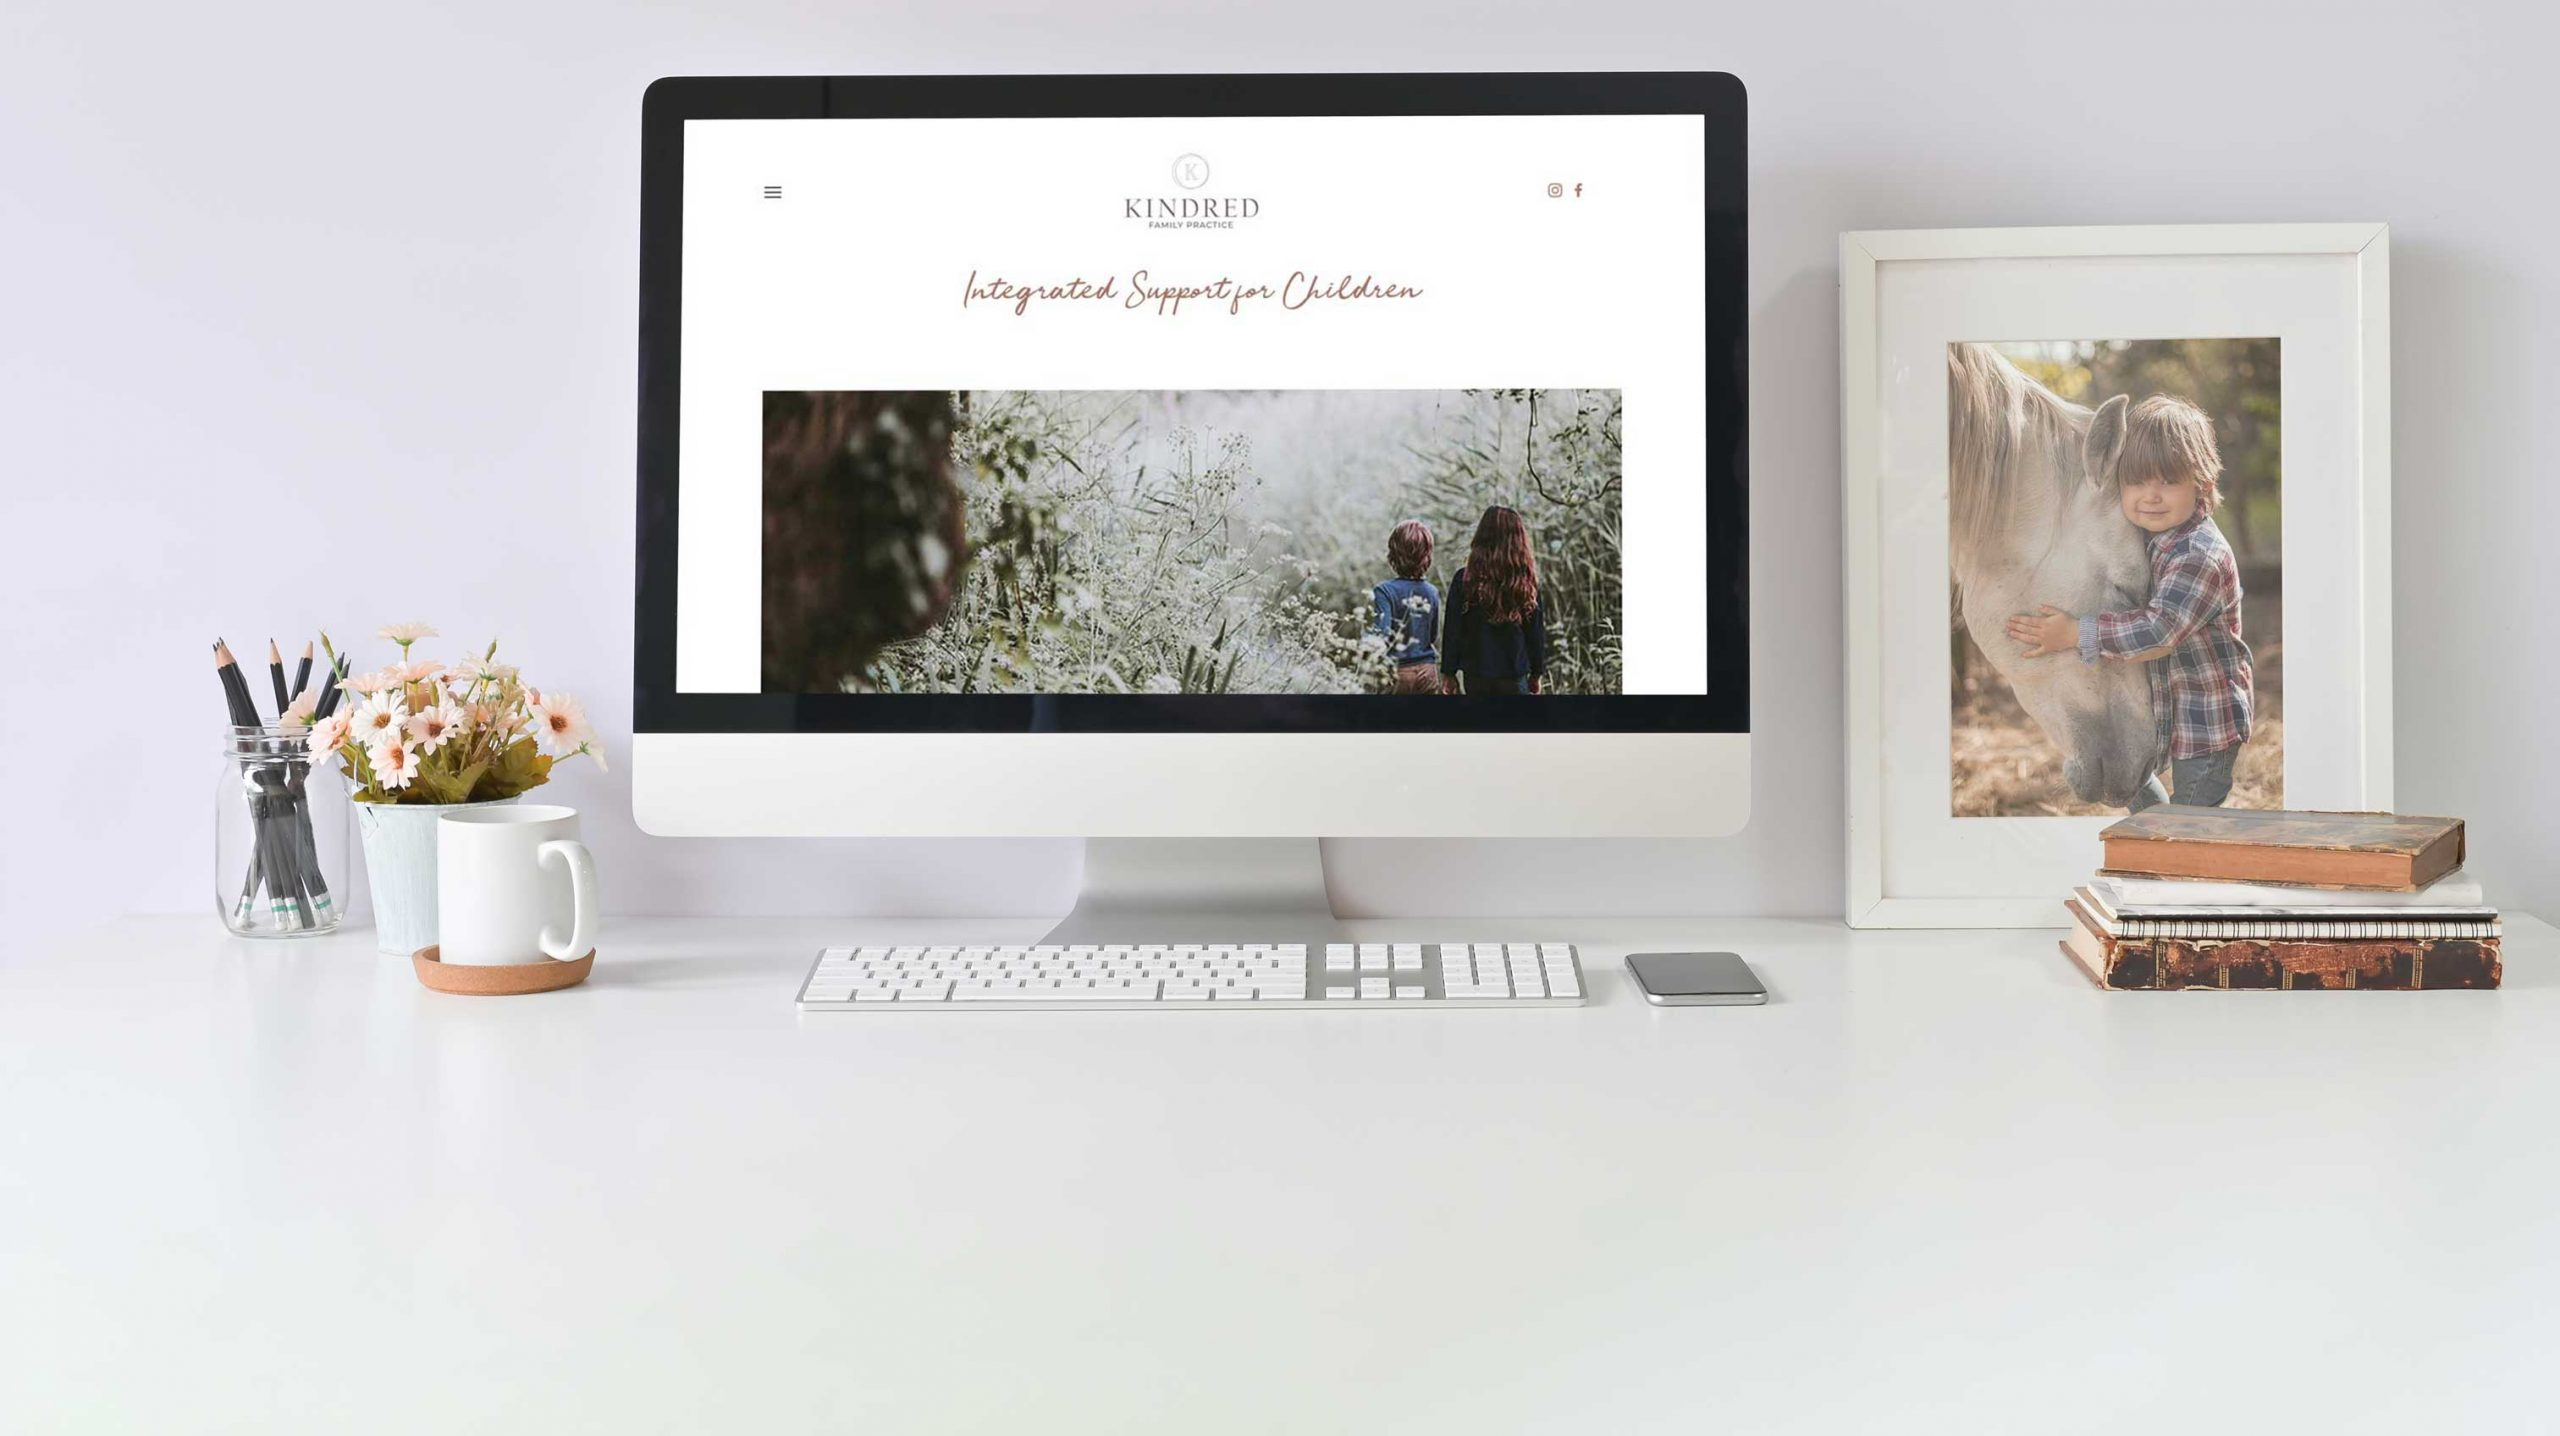 Kindred Family Practice website shown on an imac computer - White Canvas Design